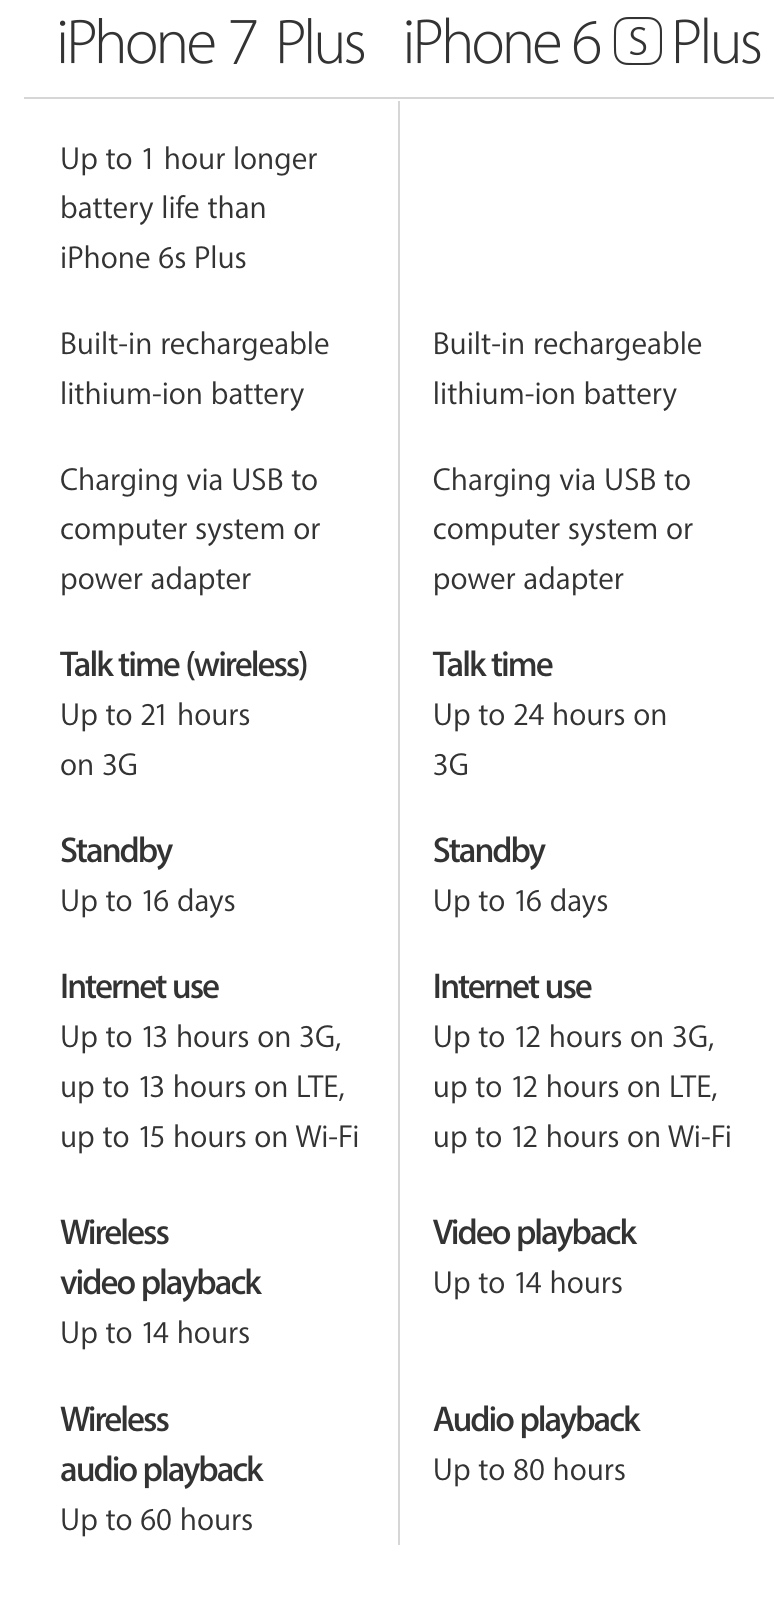 iPhone 6s Plus vs iPhone 7 Plus battery life